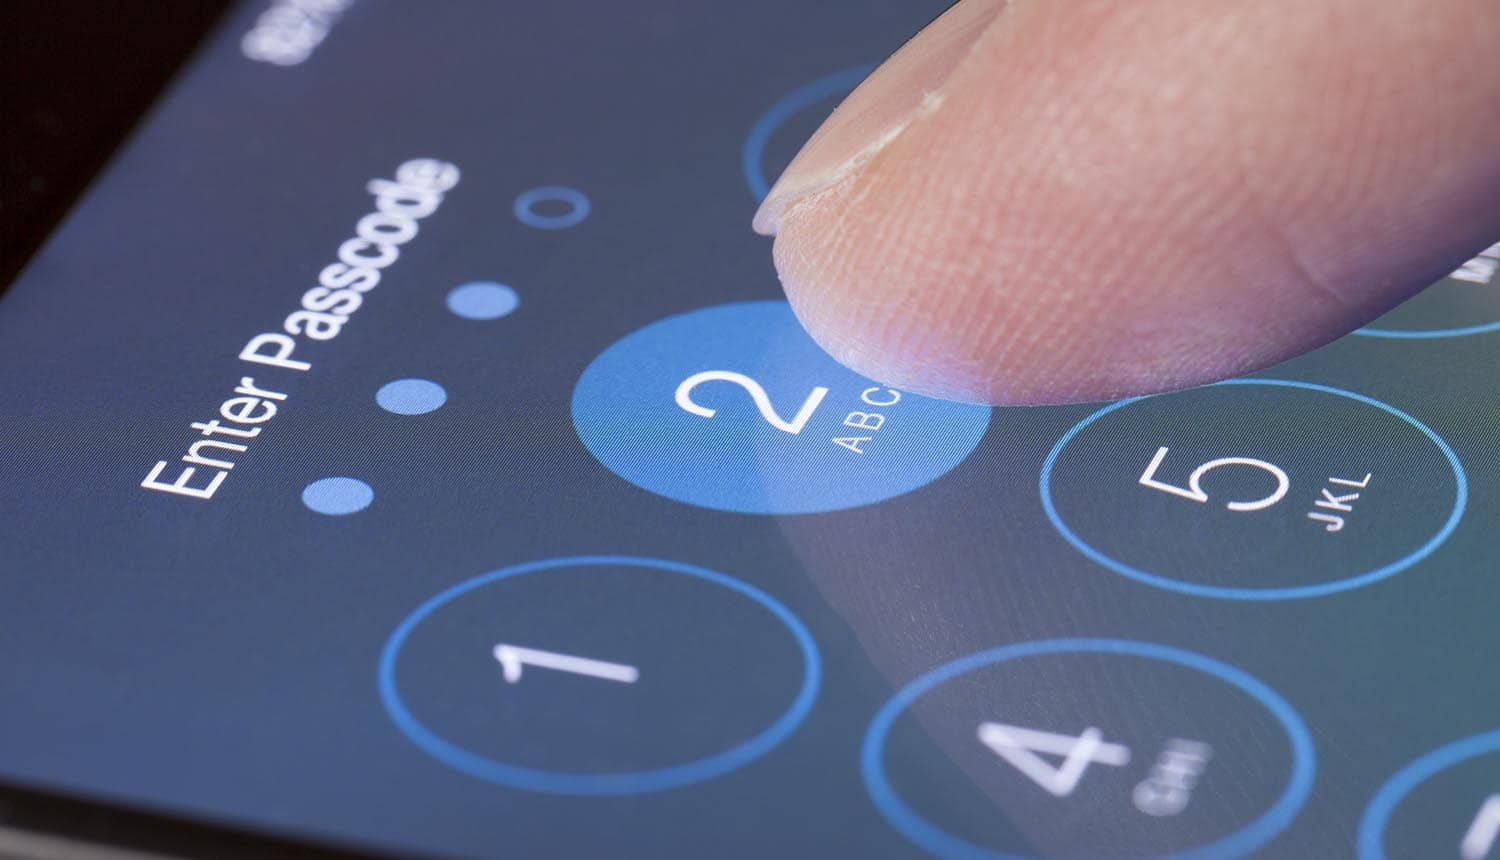 Finger entering phone passcode showing decision on Fifth Amendment